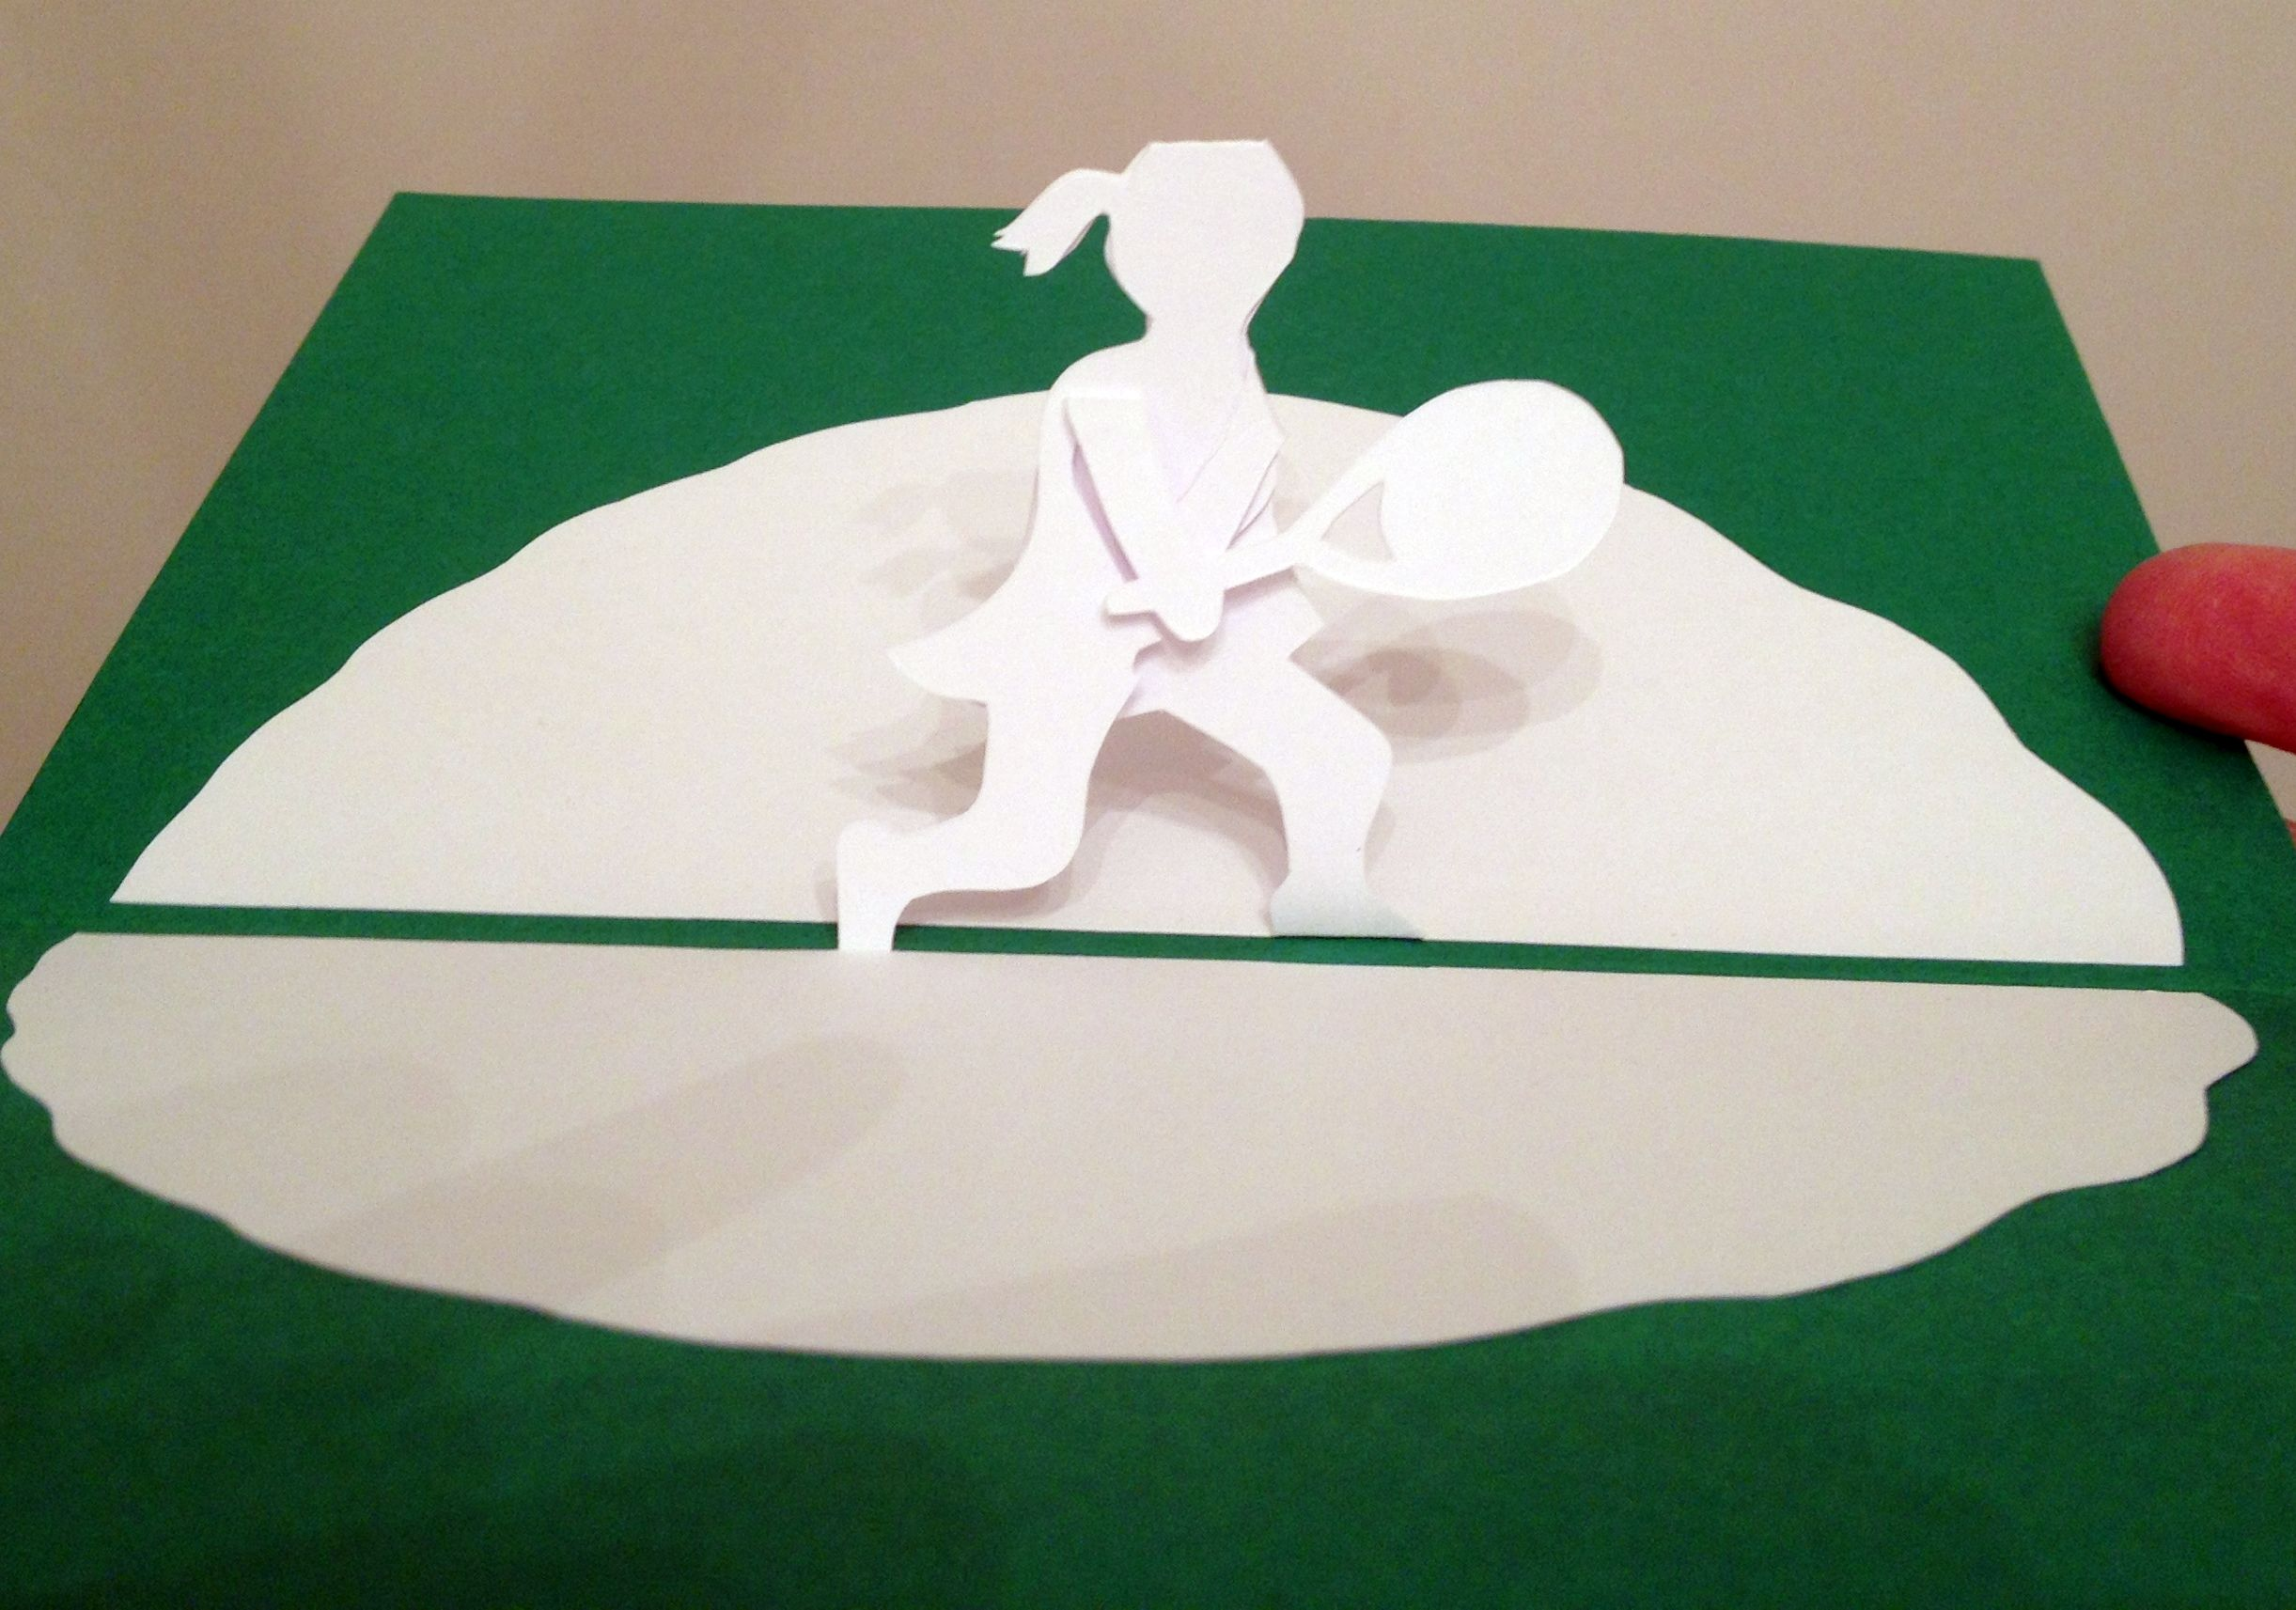 Tennis Player Pop Up Card Template From Kirgami Pop Up Architecture